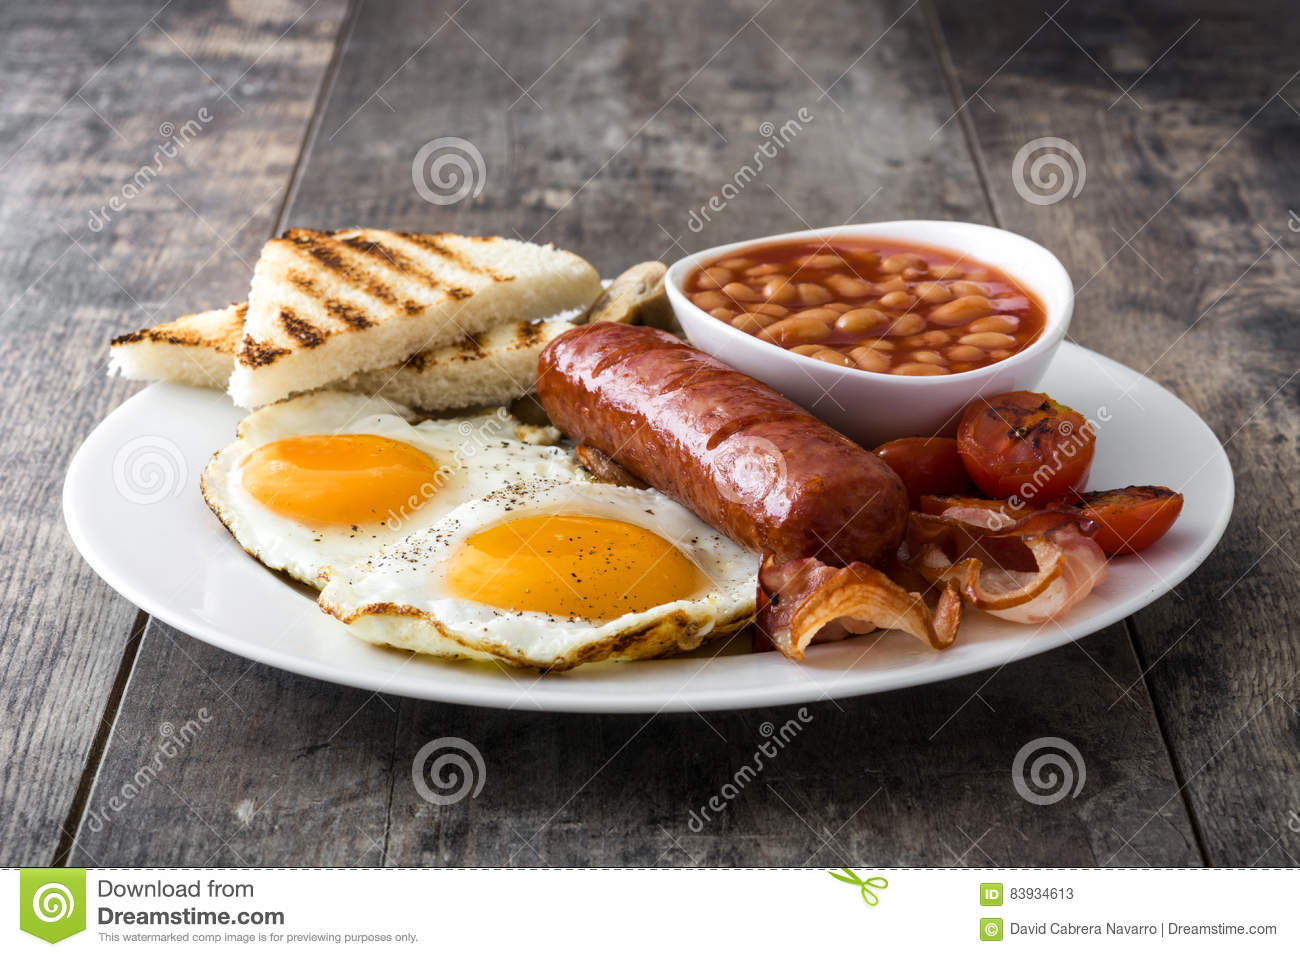 Traditional Full English Breakfast With Fried Eggs Sausages Beans Mushrooms Grilled Tomatoes